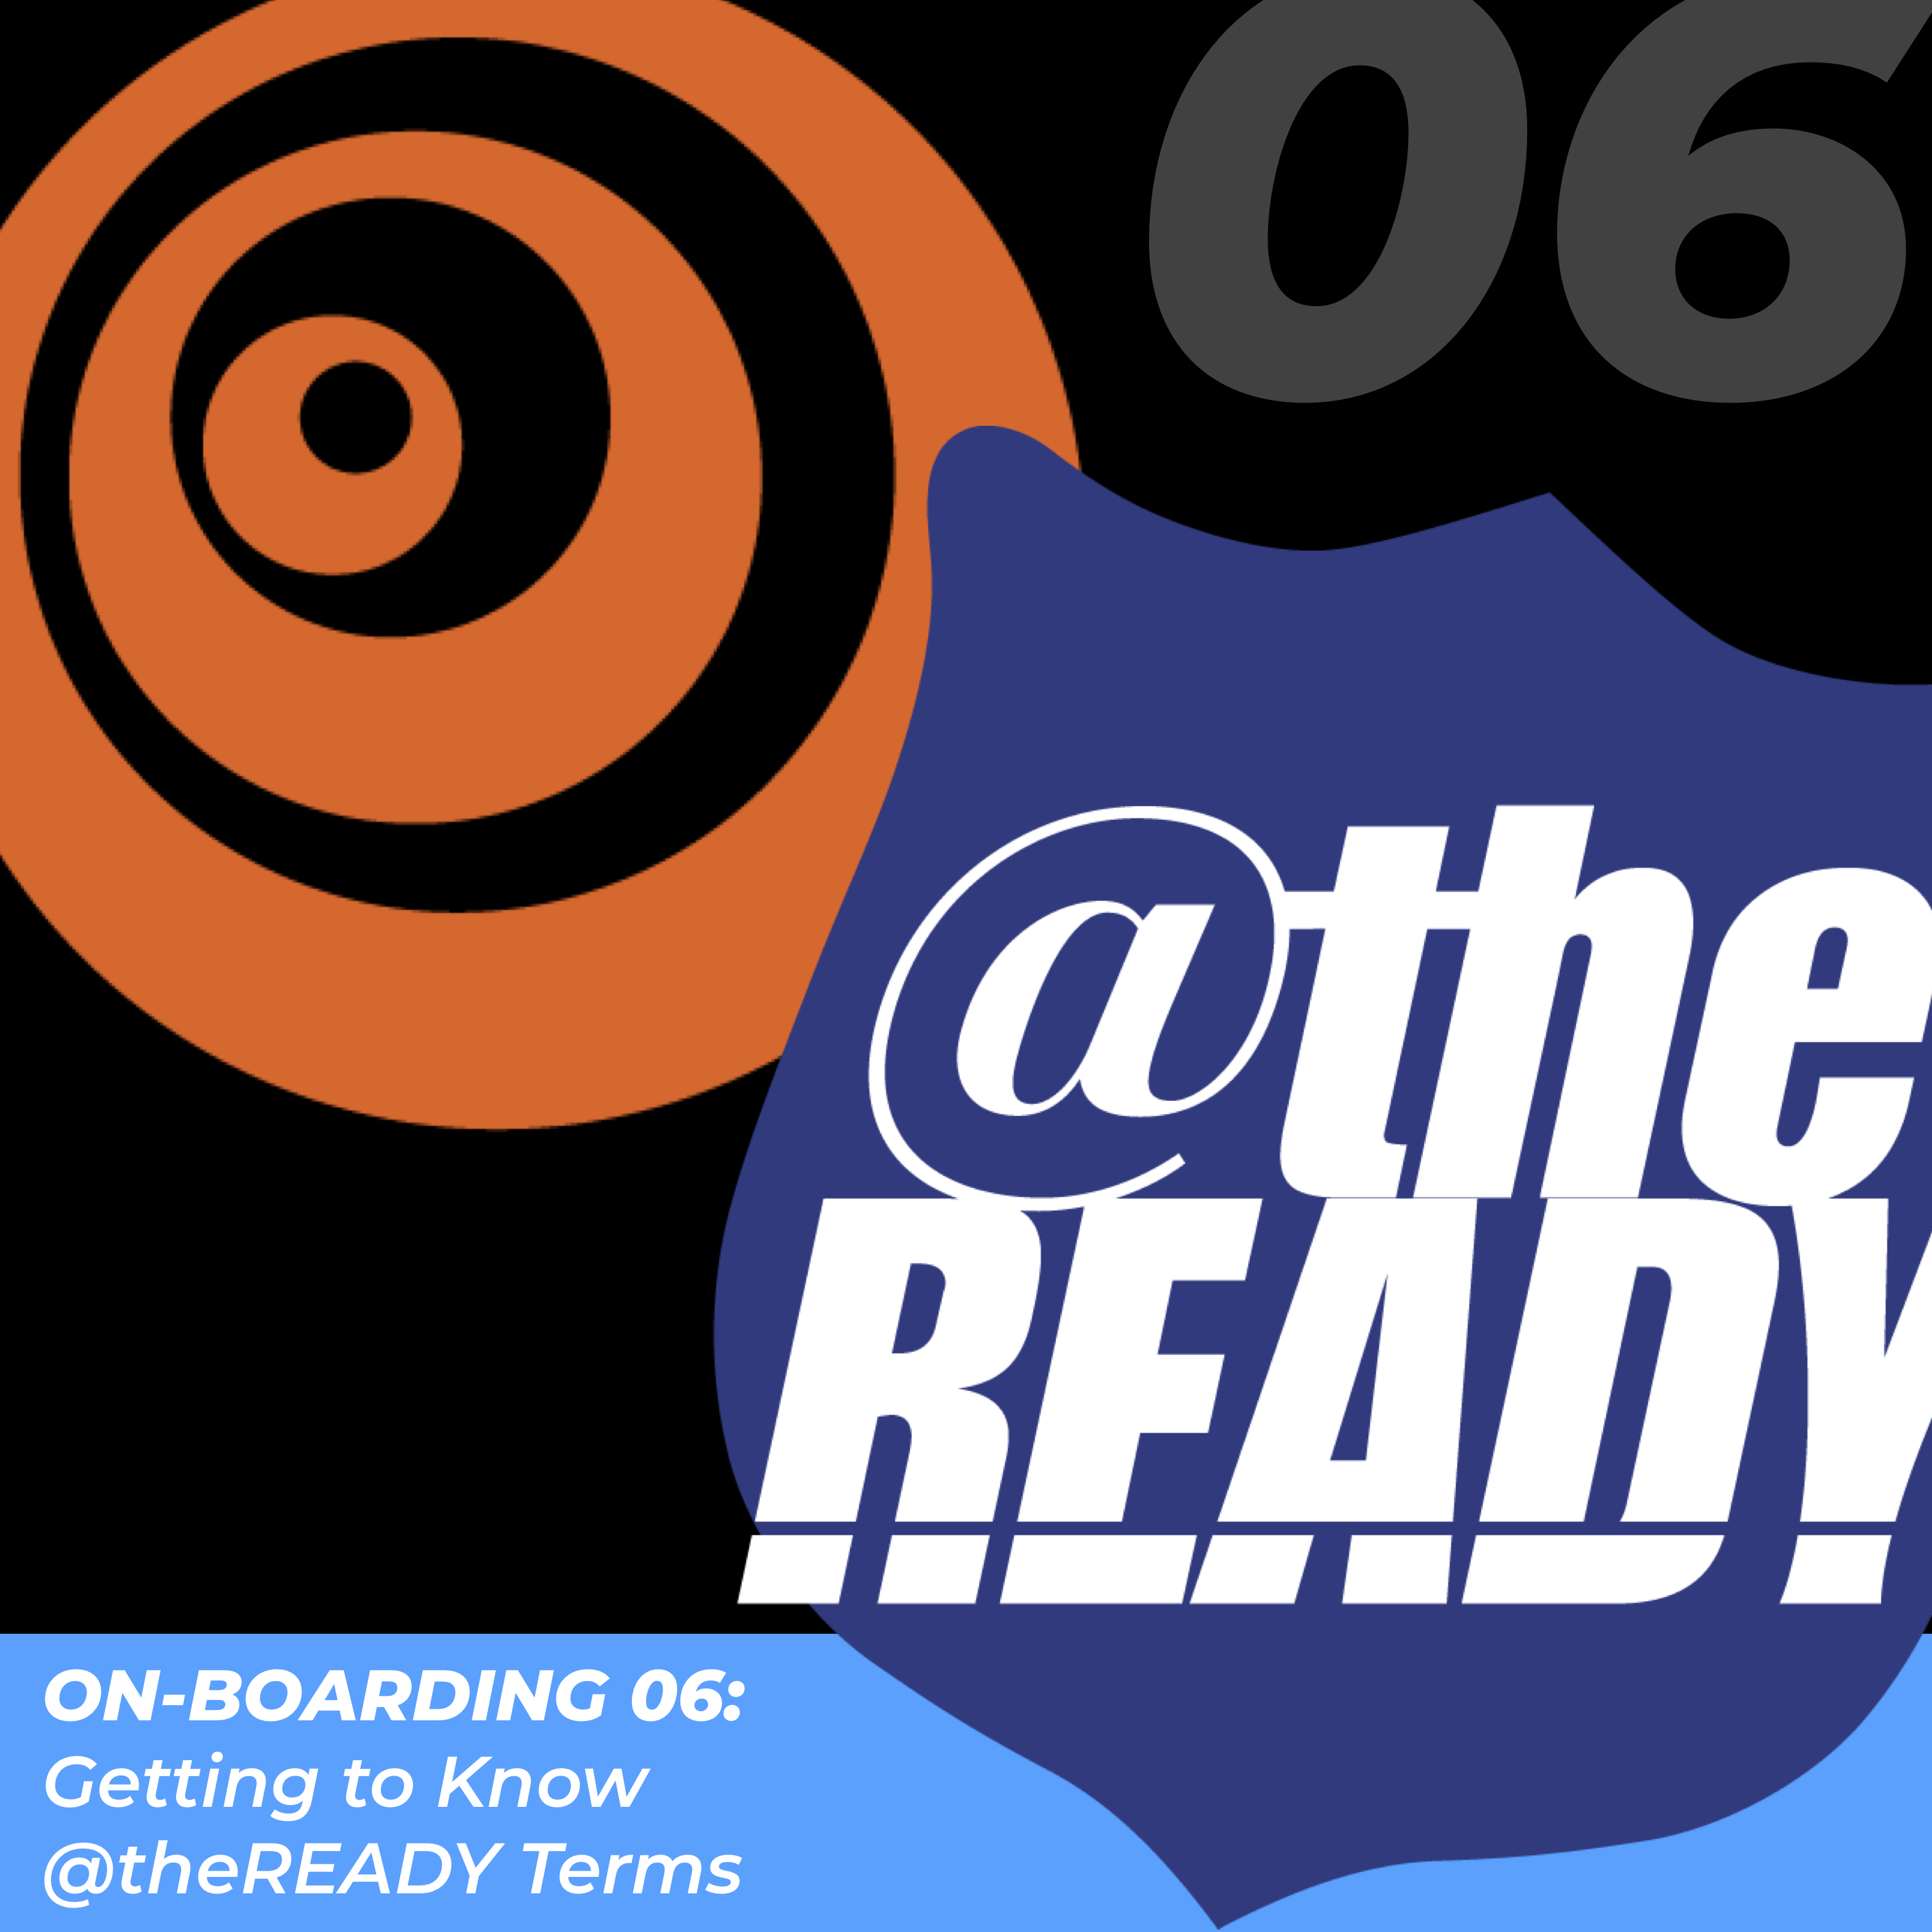 Click here for On-boarding 06: Getting to know @theReady terms.